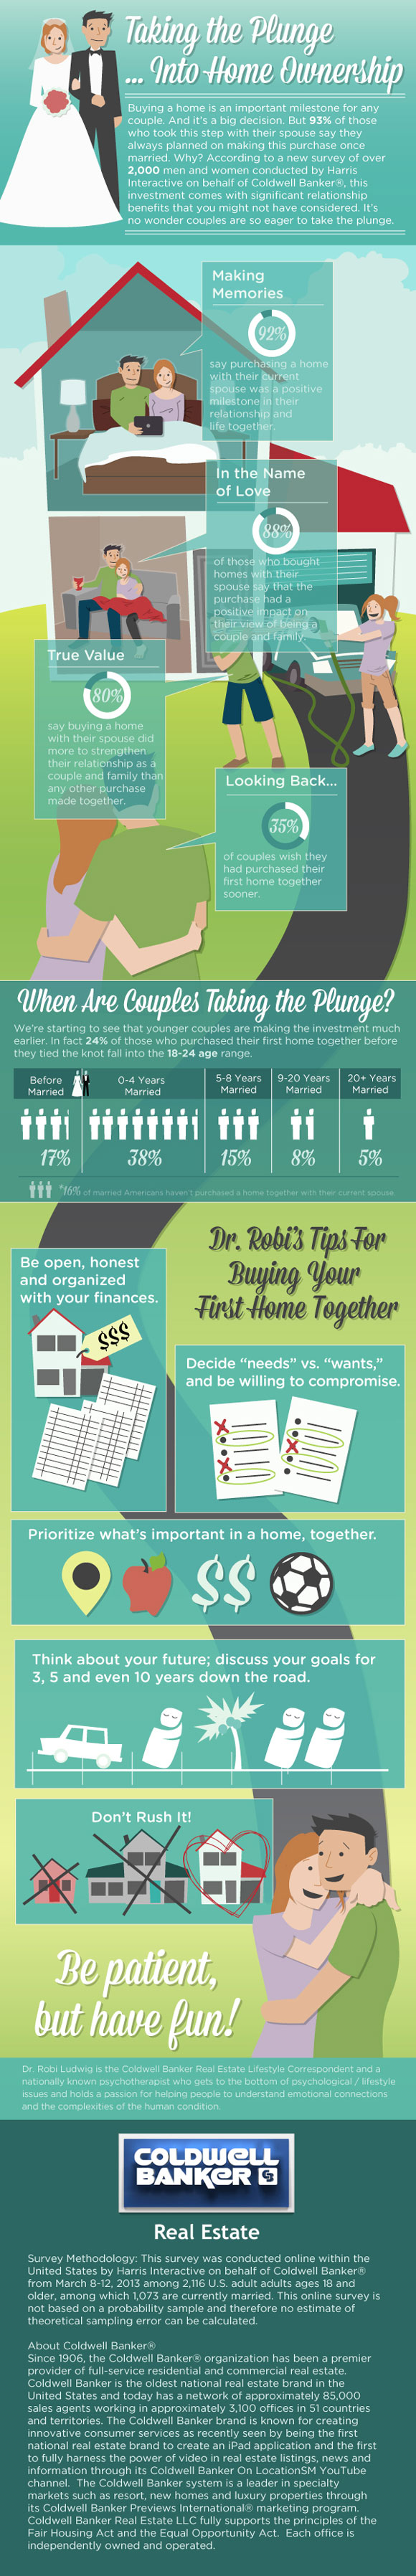 Engaged Home Buyers Infographic